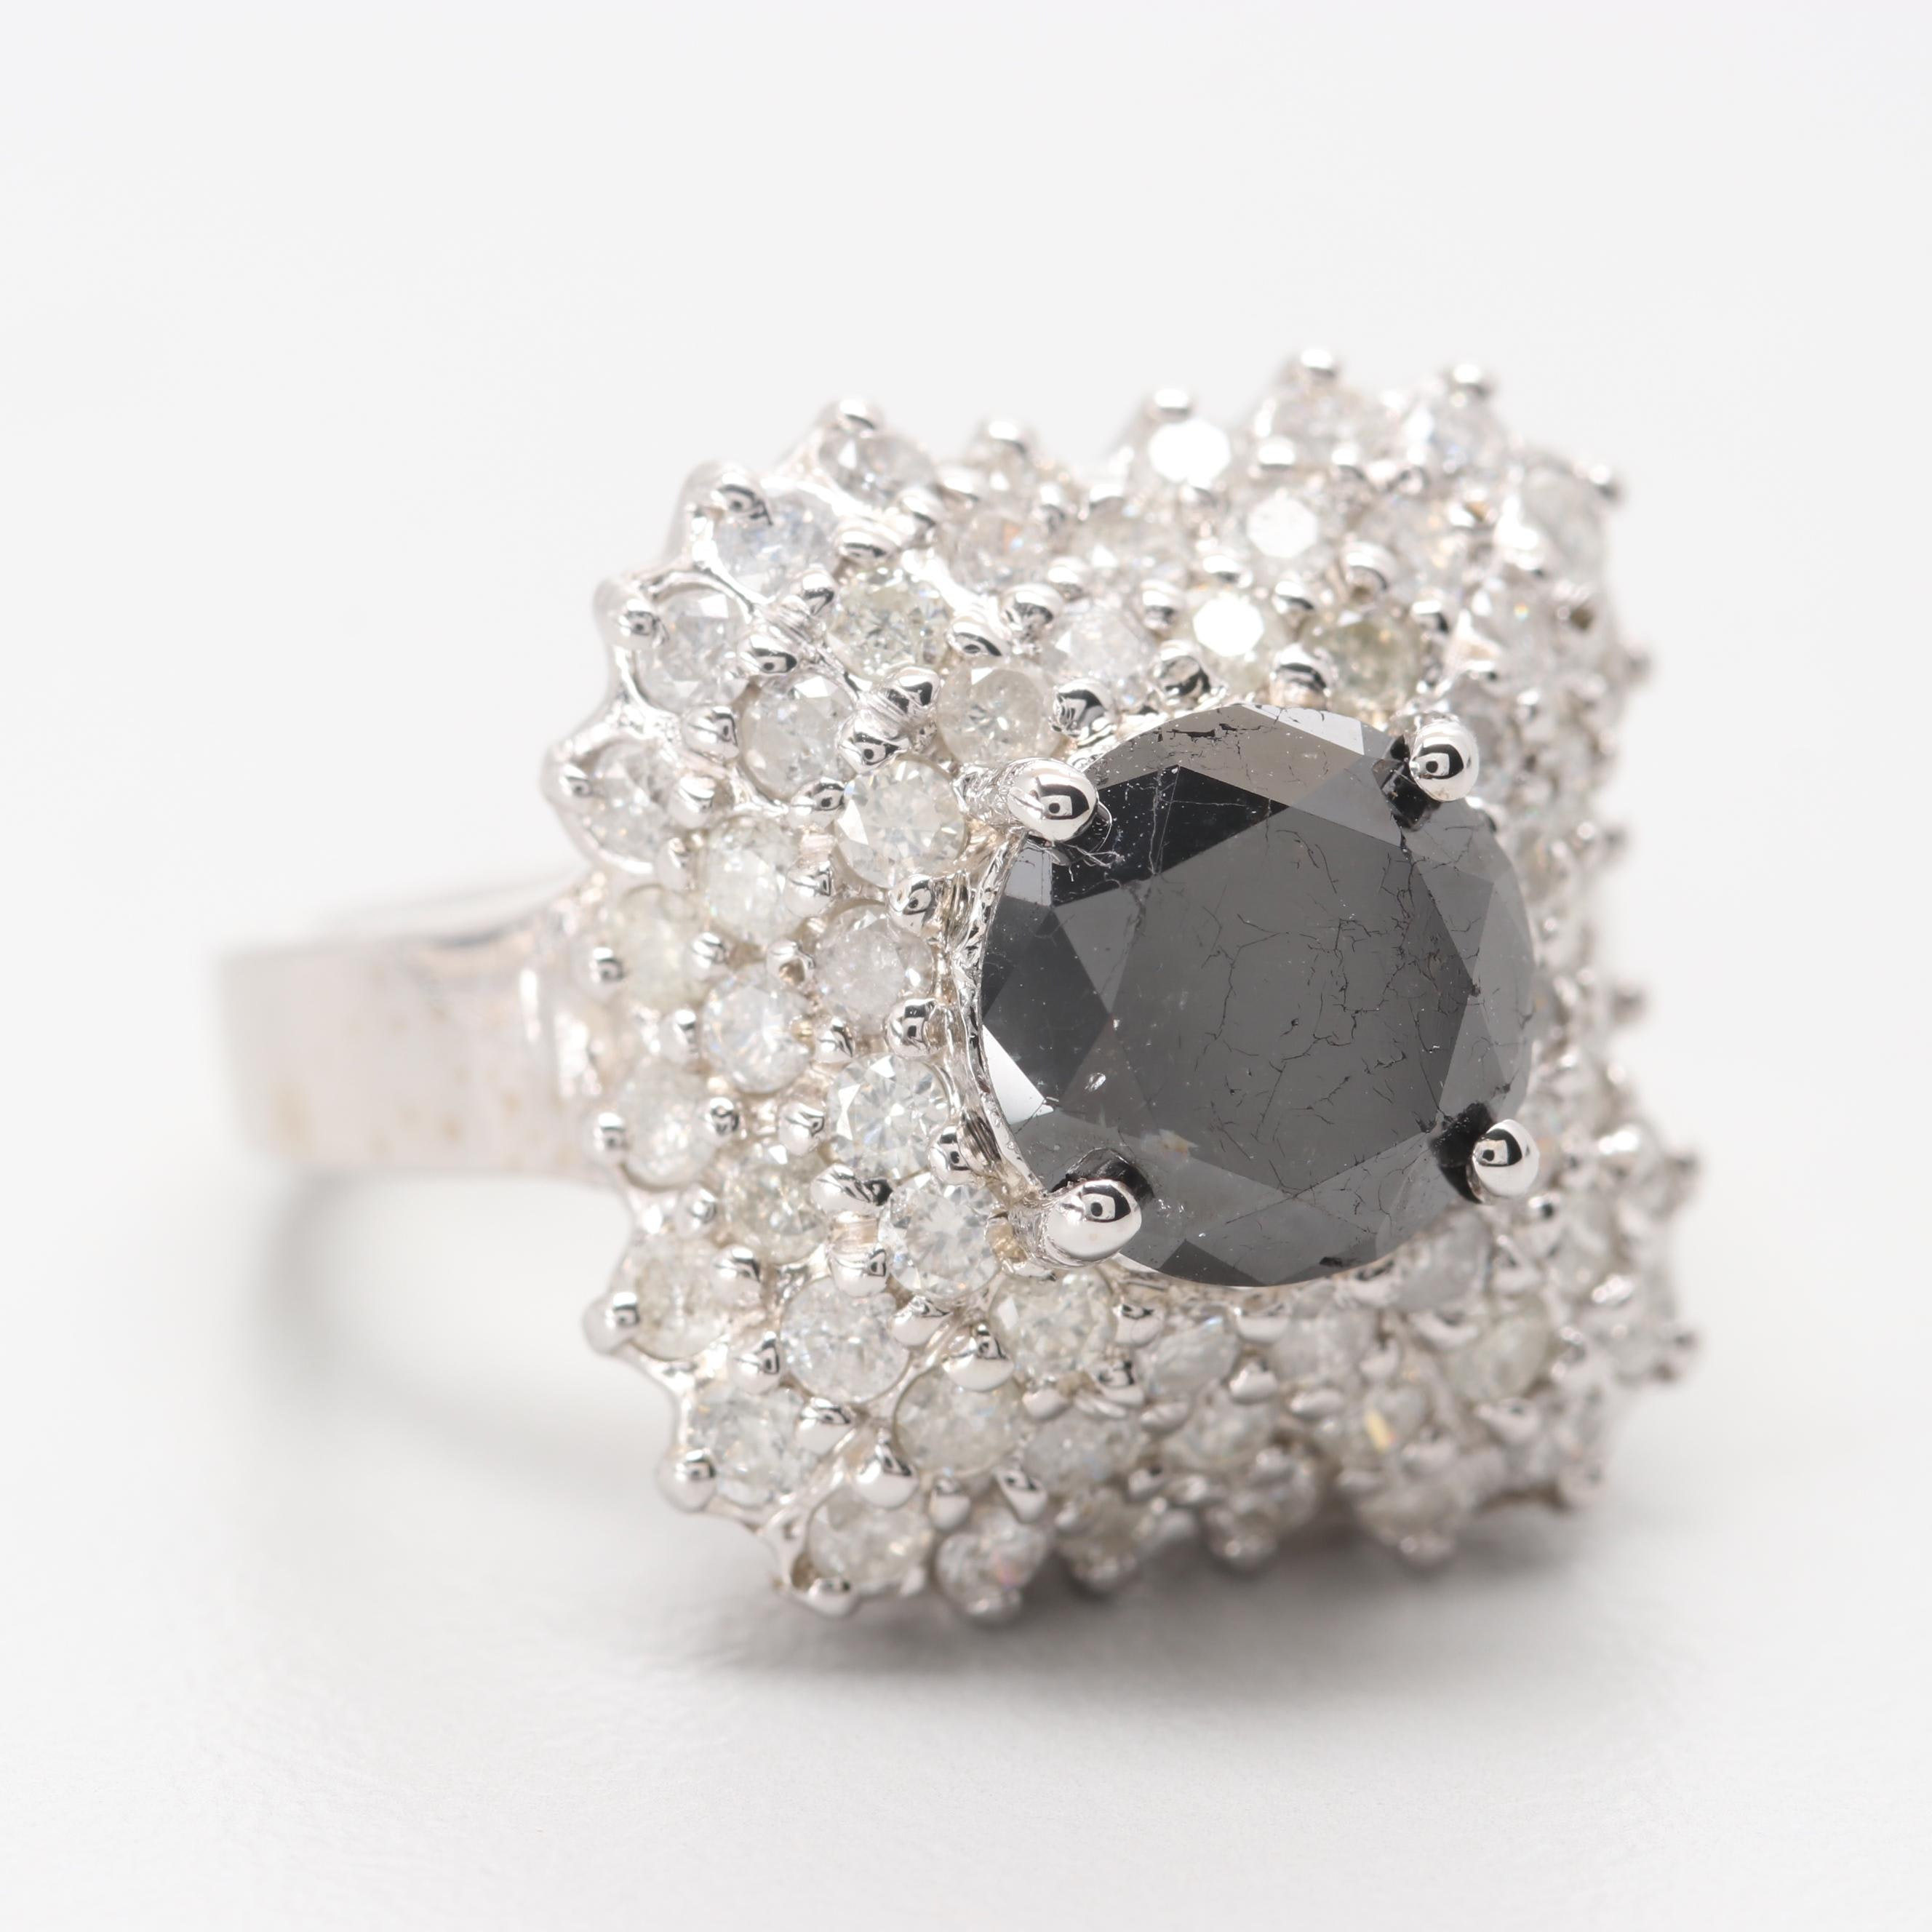 14K White Gold 2.28 CT Black Diamond Ring with 1.52 CTW Diamond Accents